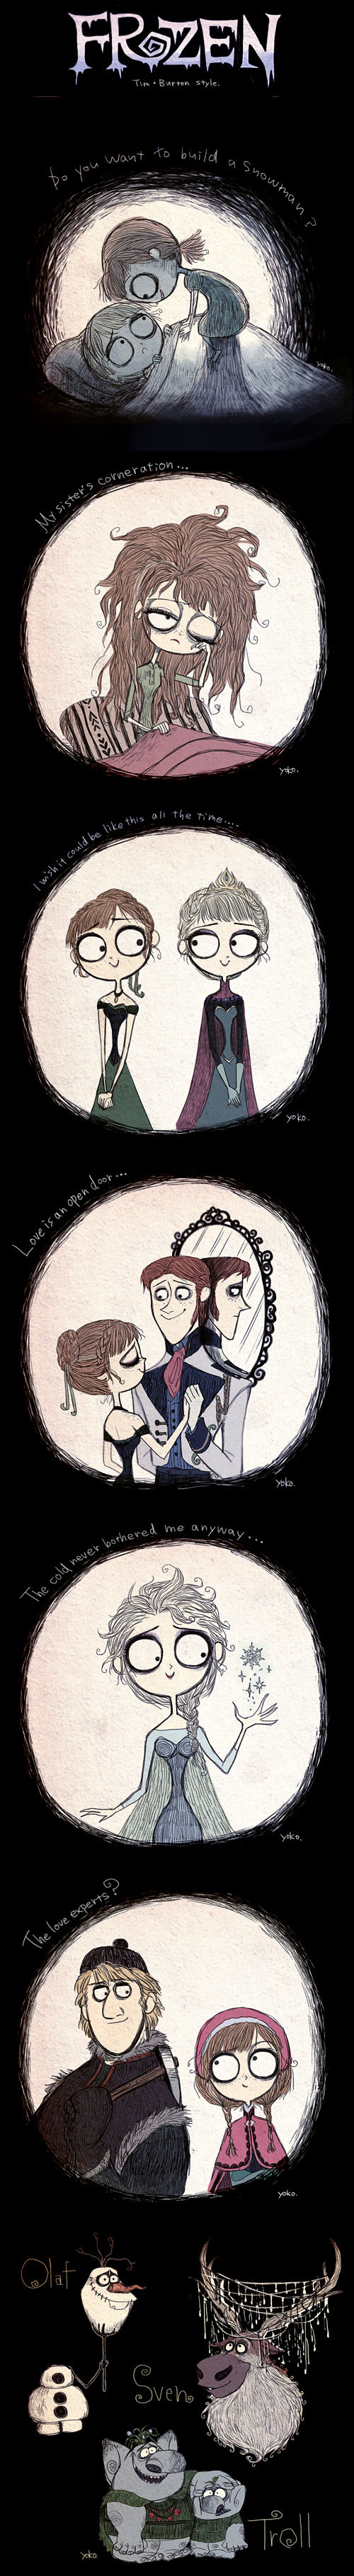 Disney's Frozen Illustrated In The Style Of Tim Burton